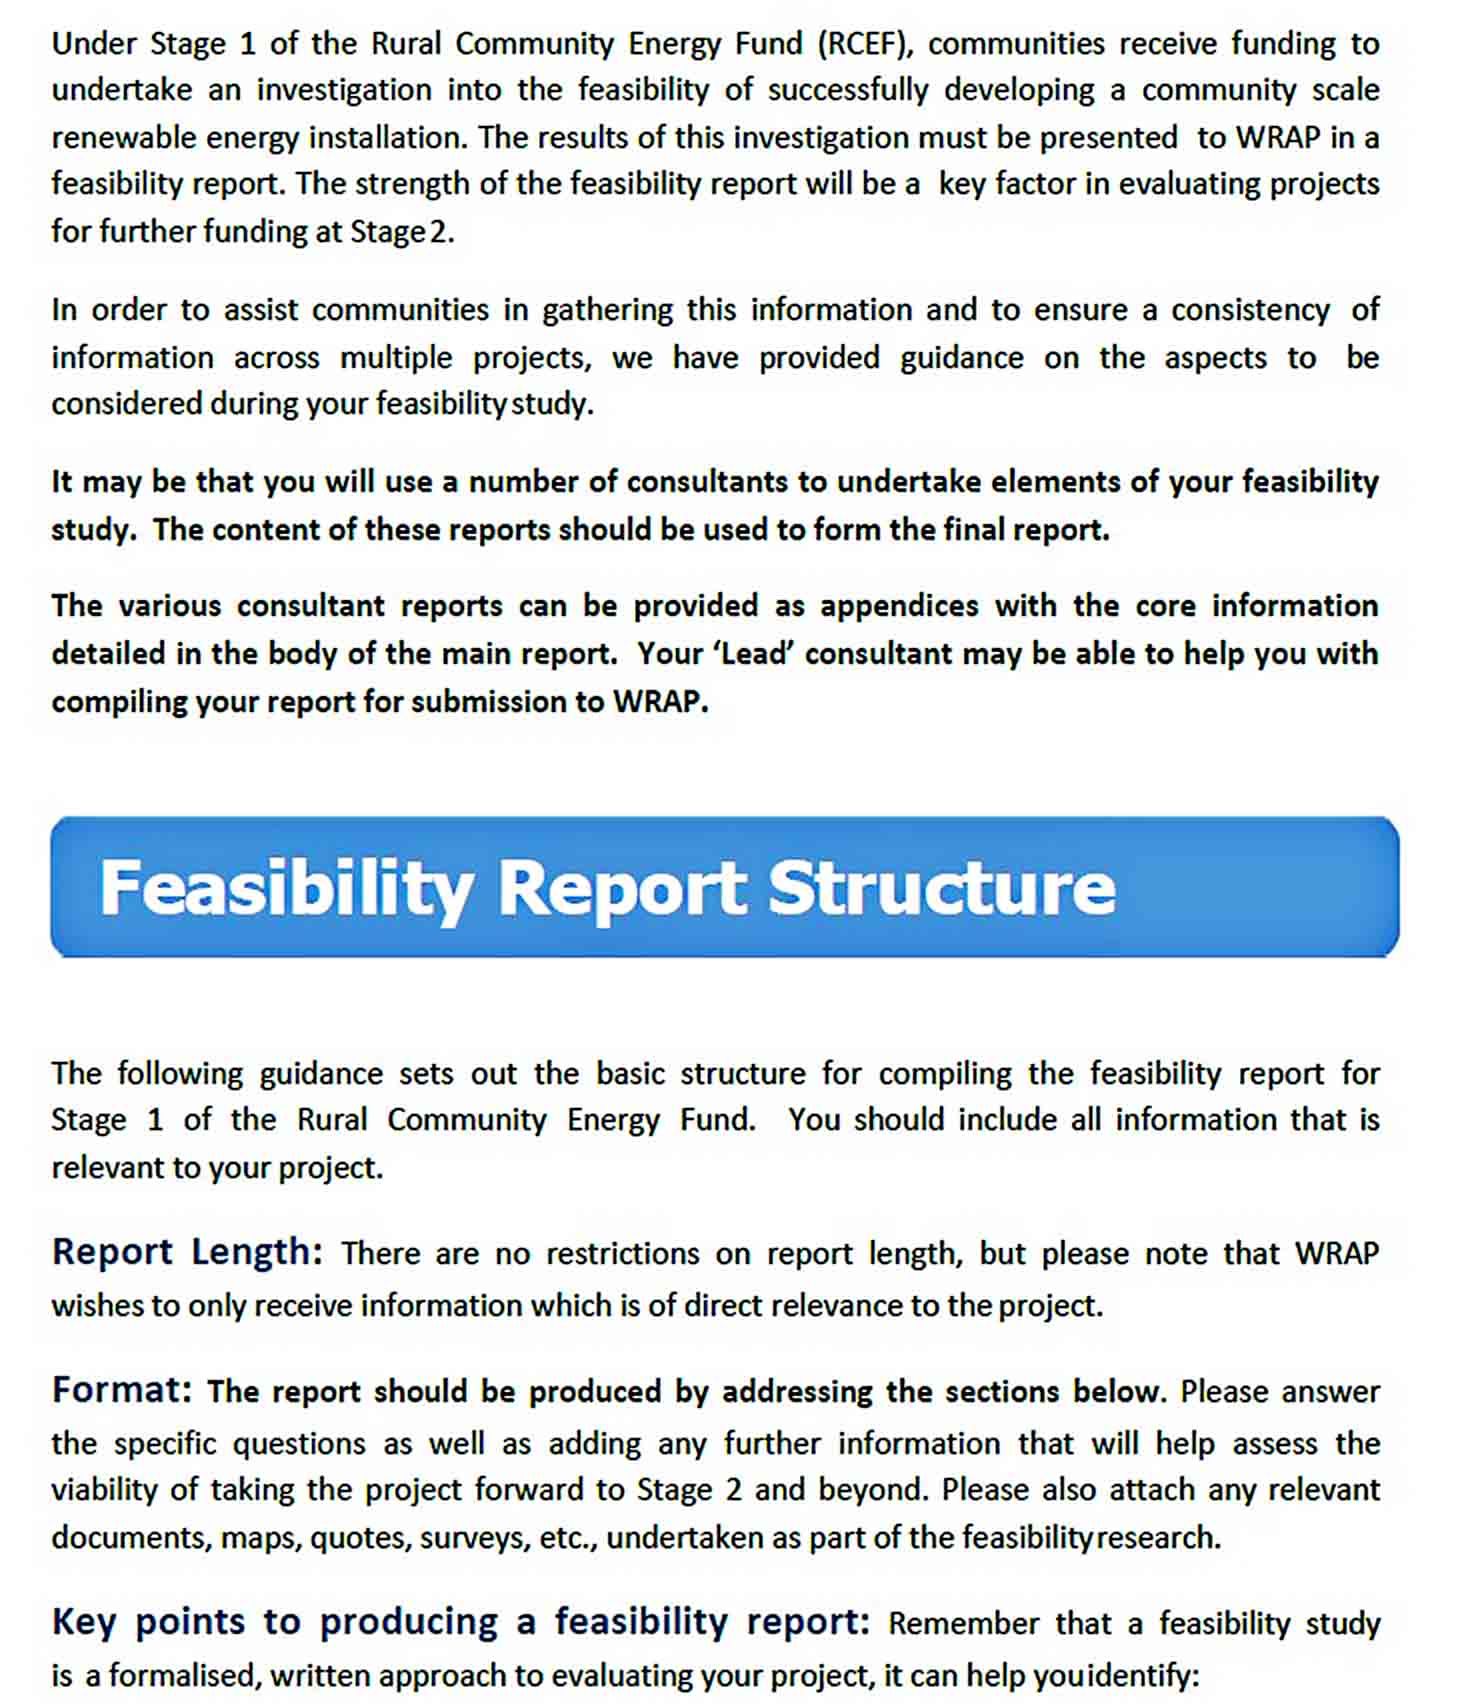 Templates RCEF Stage 1 Feasibility Report Structure Nov 2015 0 1